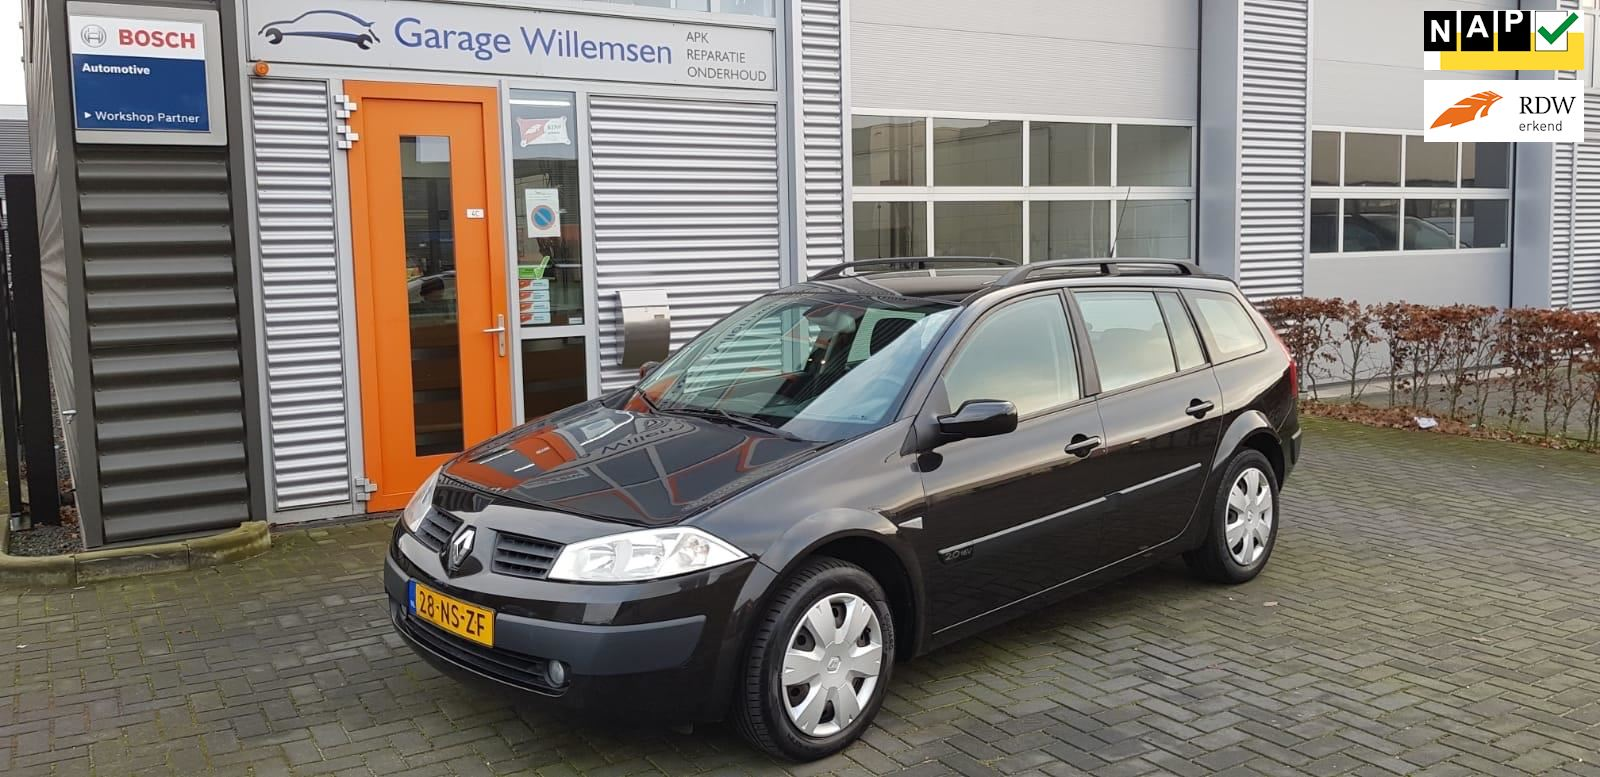 Renault Mégane Grand Tour occasion - Garage Willemsen